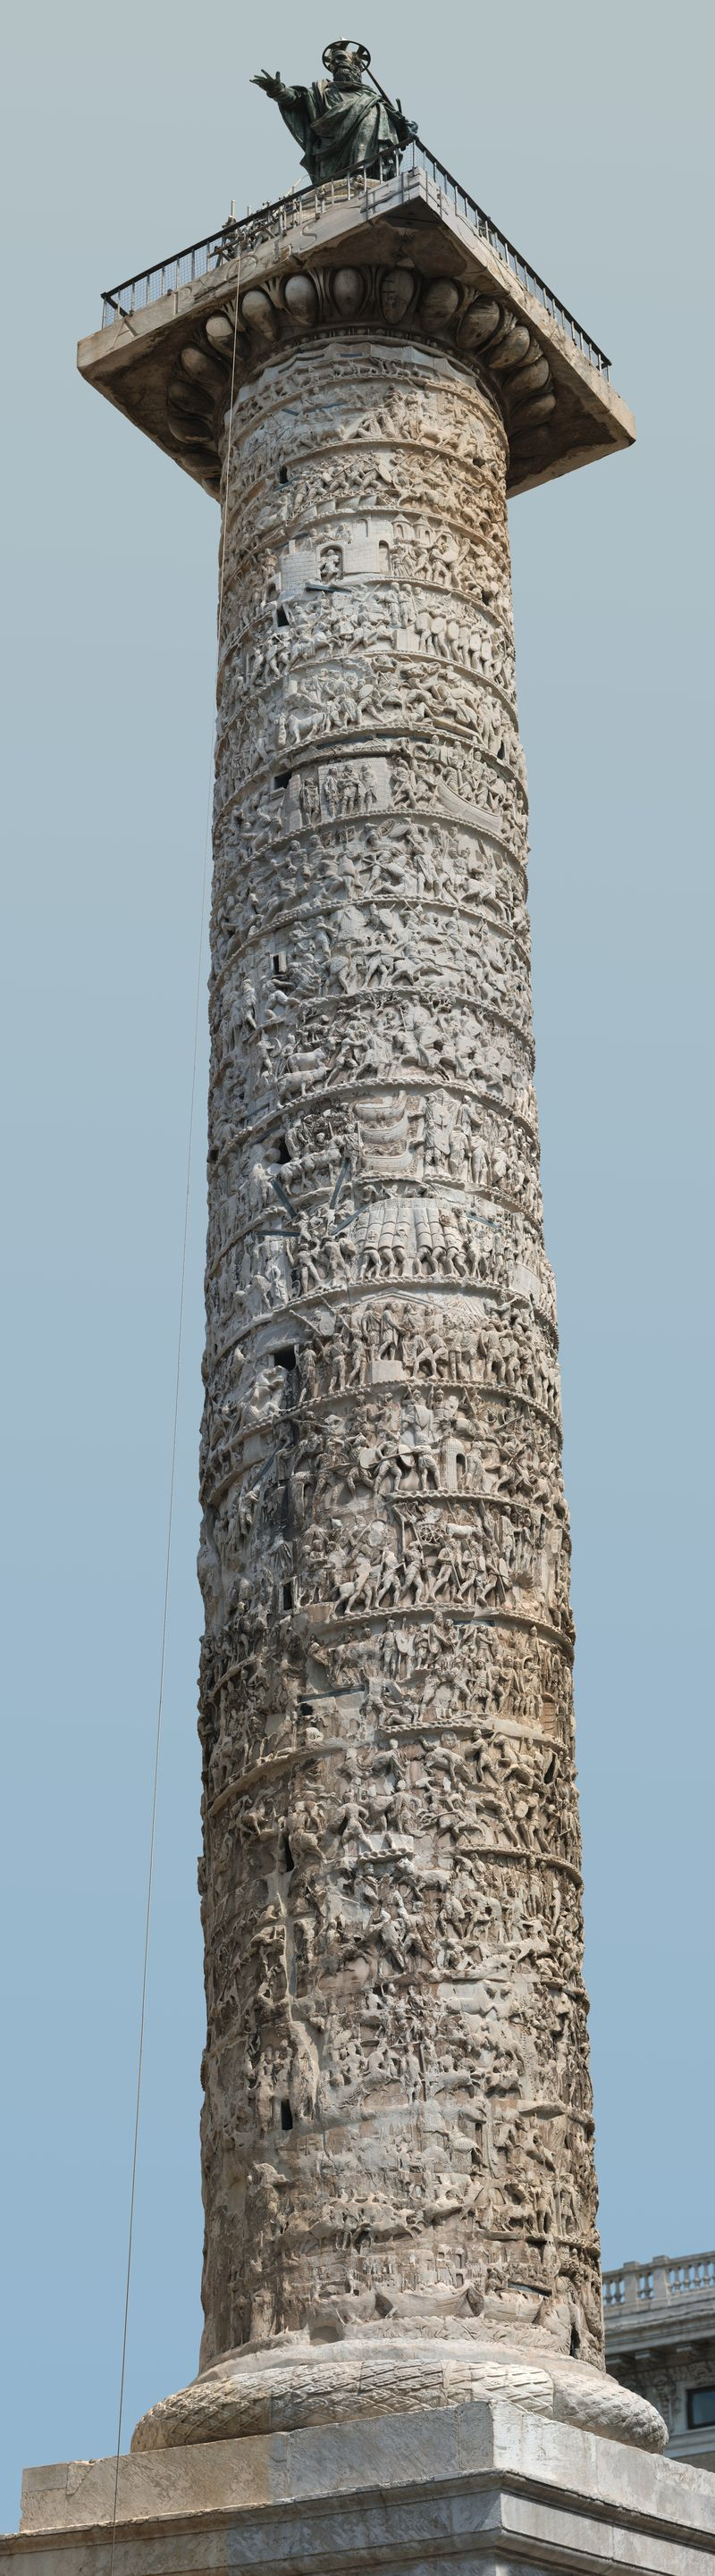 Column_of_Marcus_Aurelius_detailed_view_03_9313px